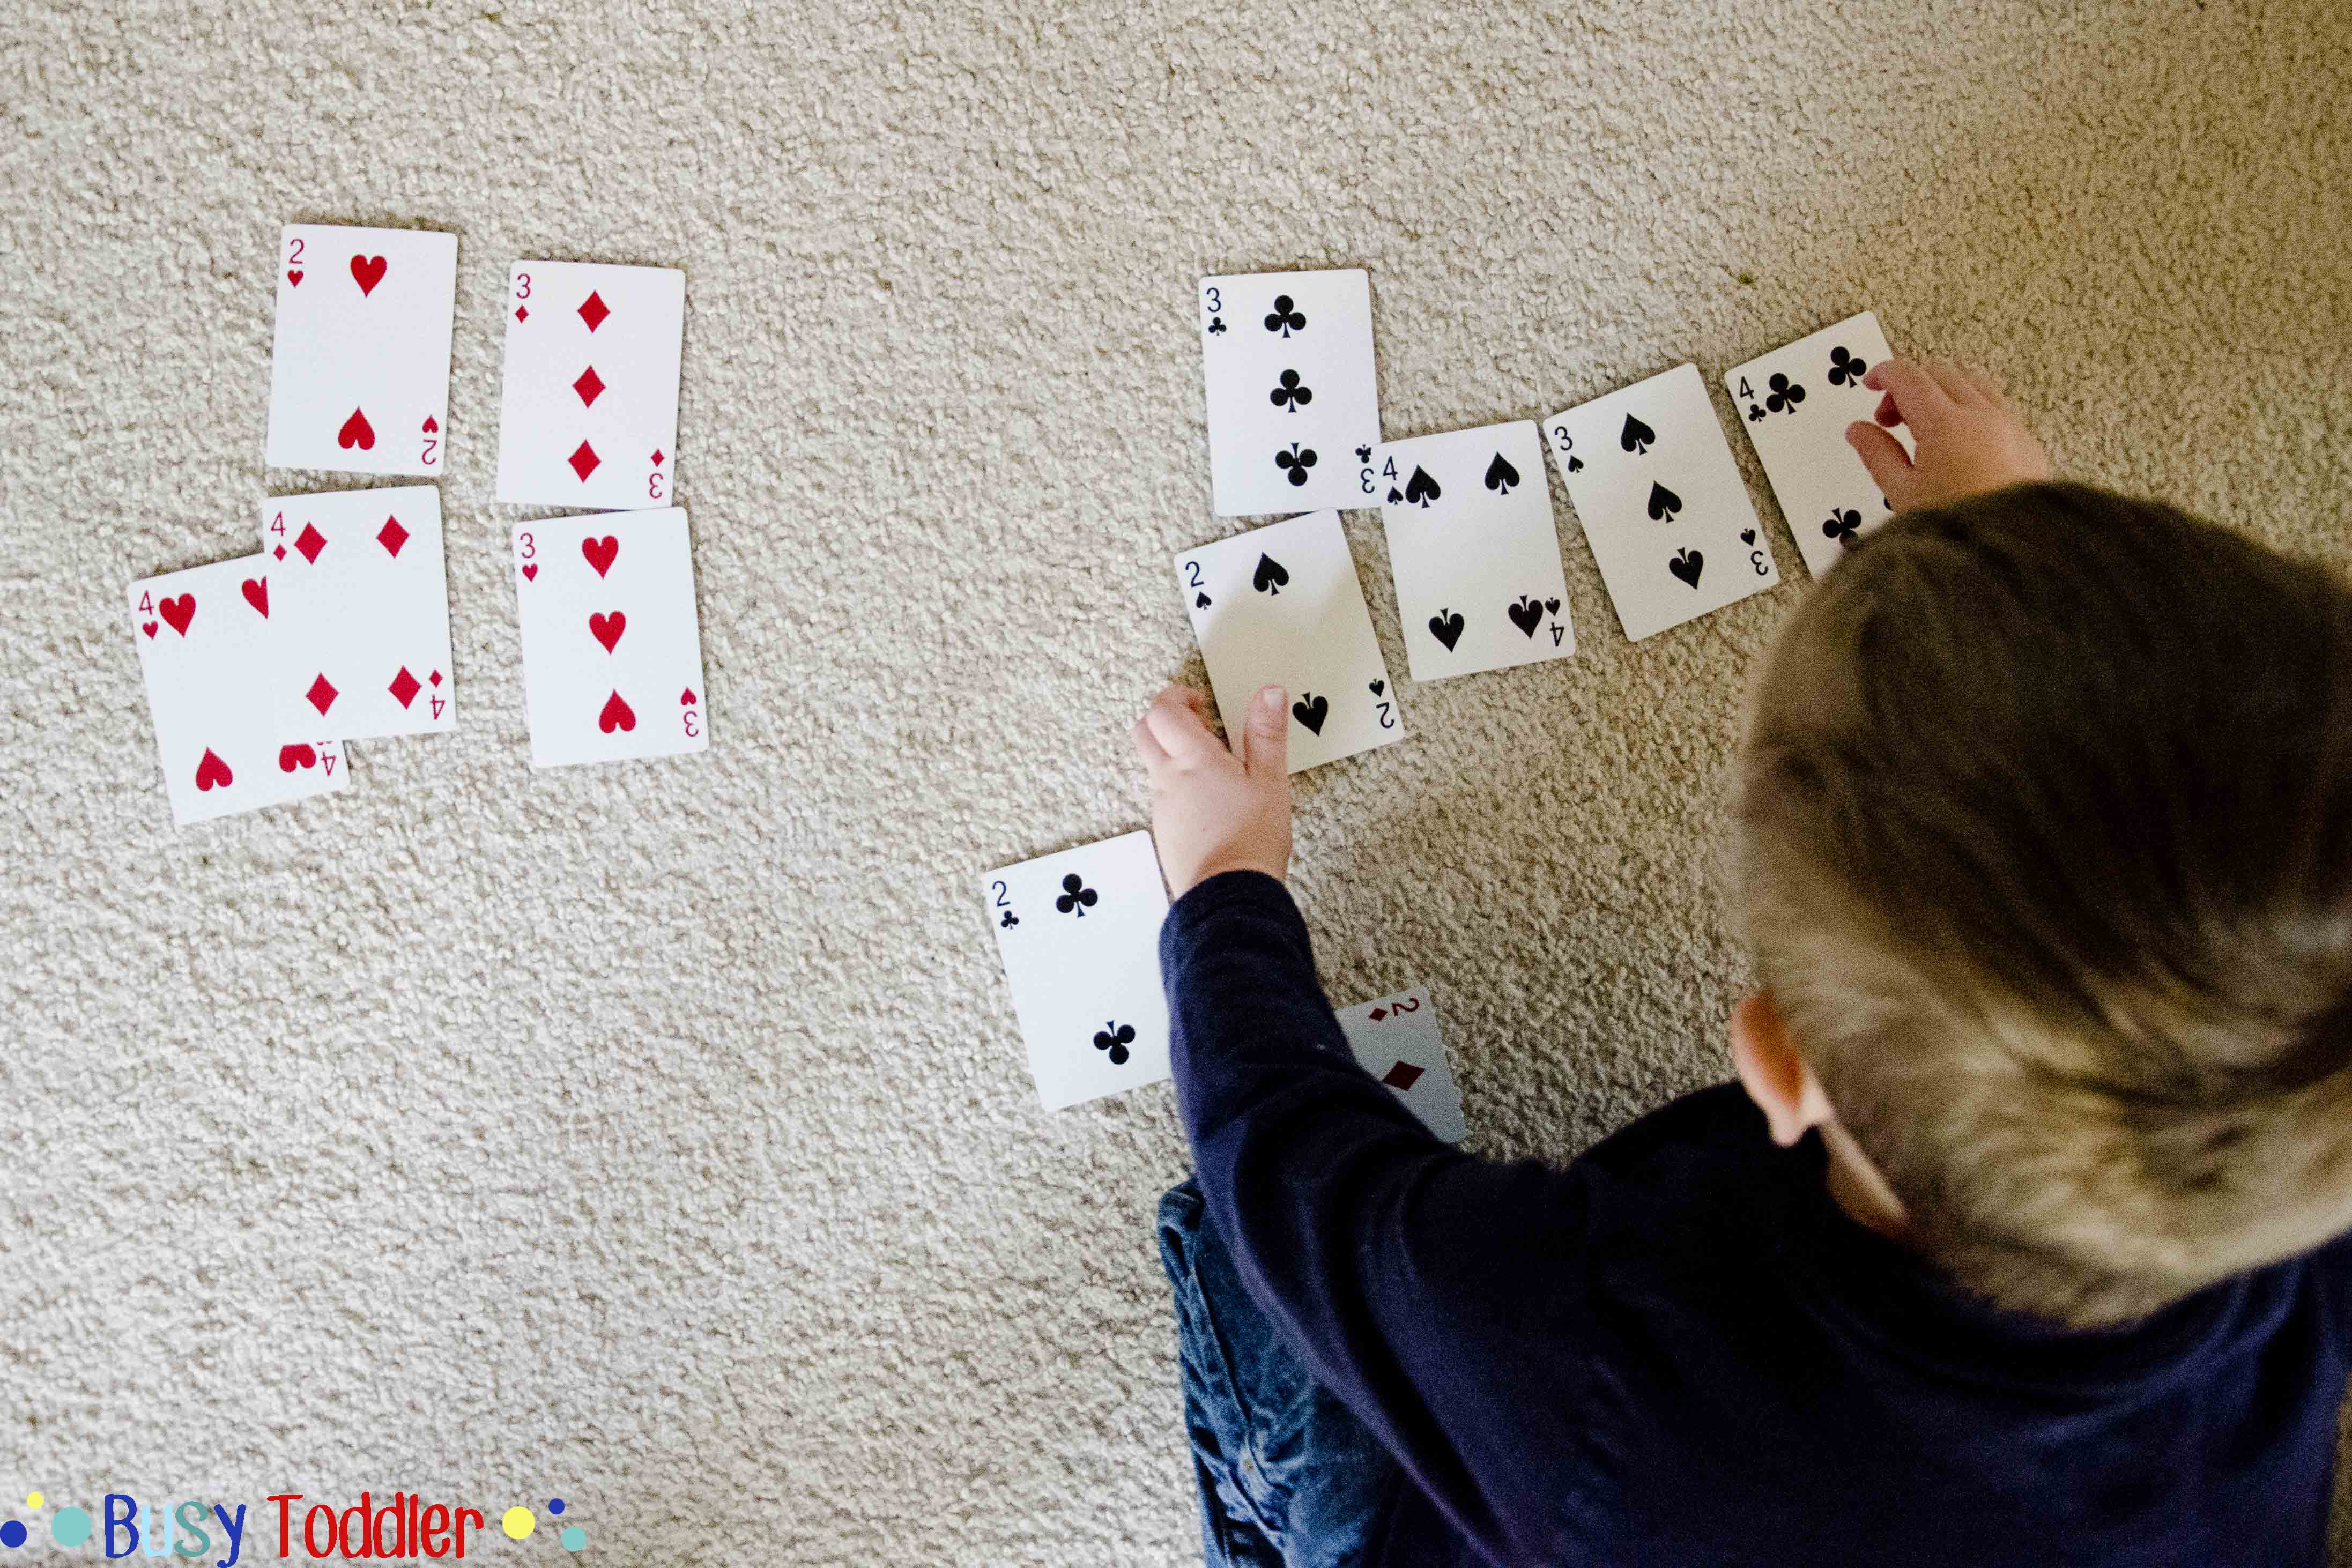 4 Simple Card Games Busy Toddler